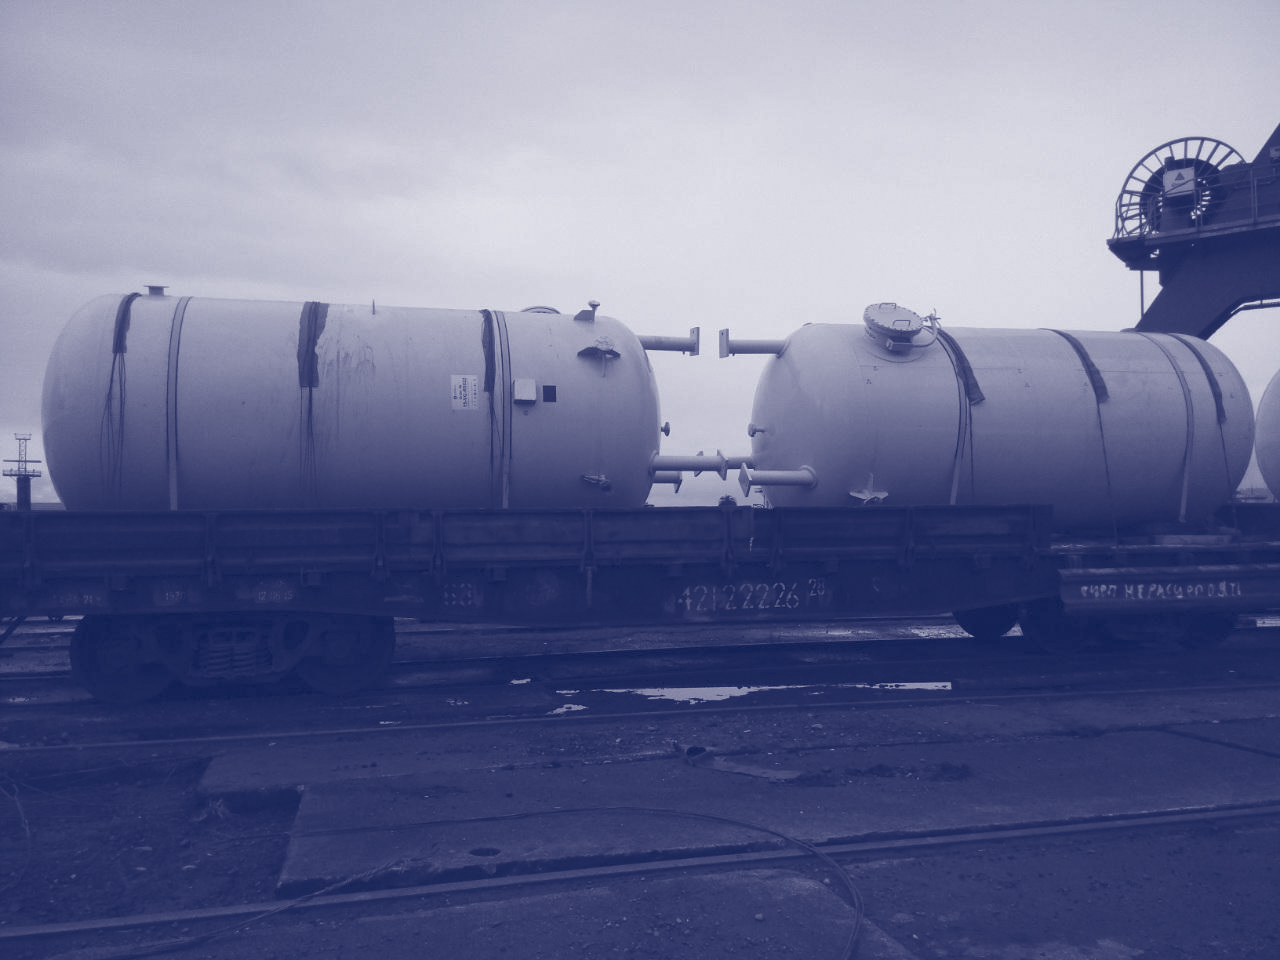 Carriage of oil and natural gas extraction equipment, natural gas compressors, liquid gas storage tanks.